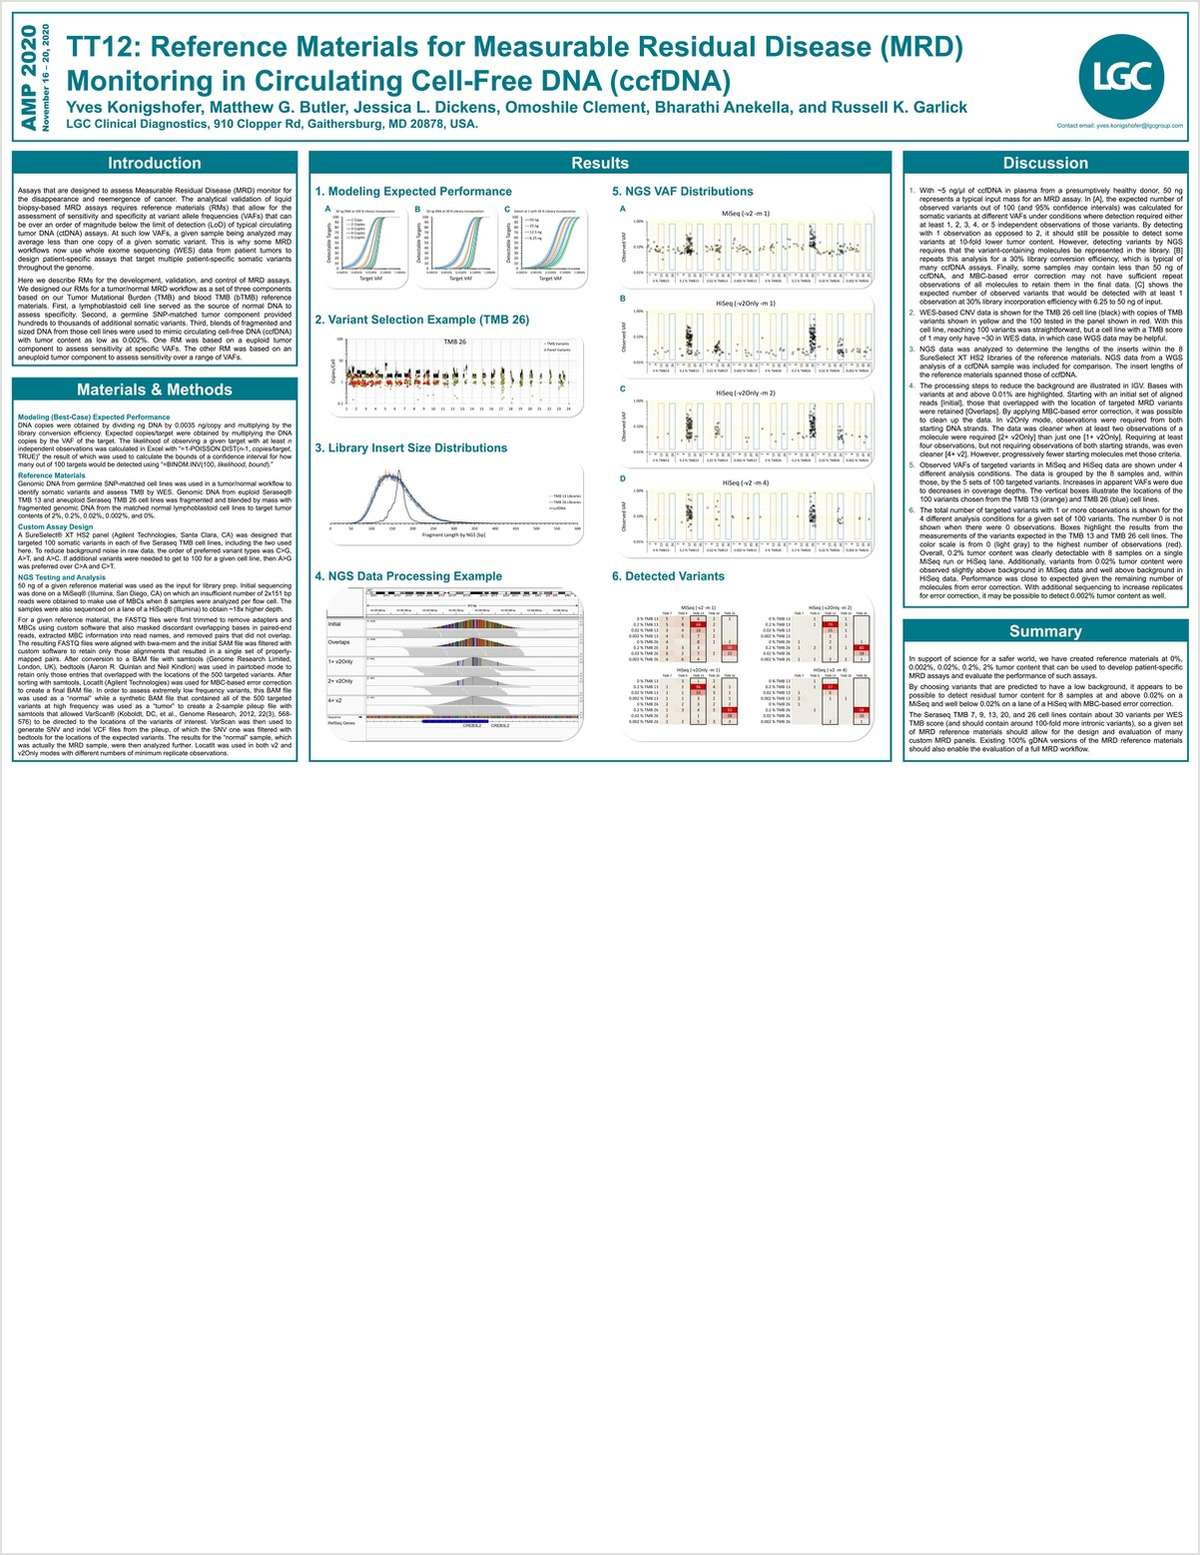 Reference Materials for Measurable Residual Disease (MRD) Monitoring in Circulating Cell-Free DNA